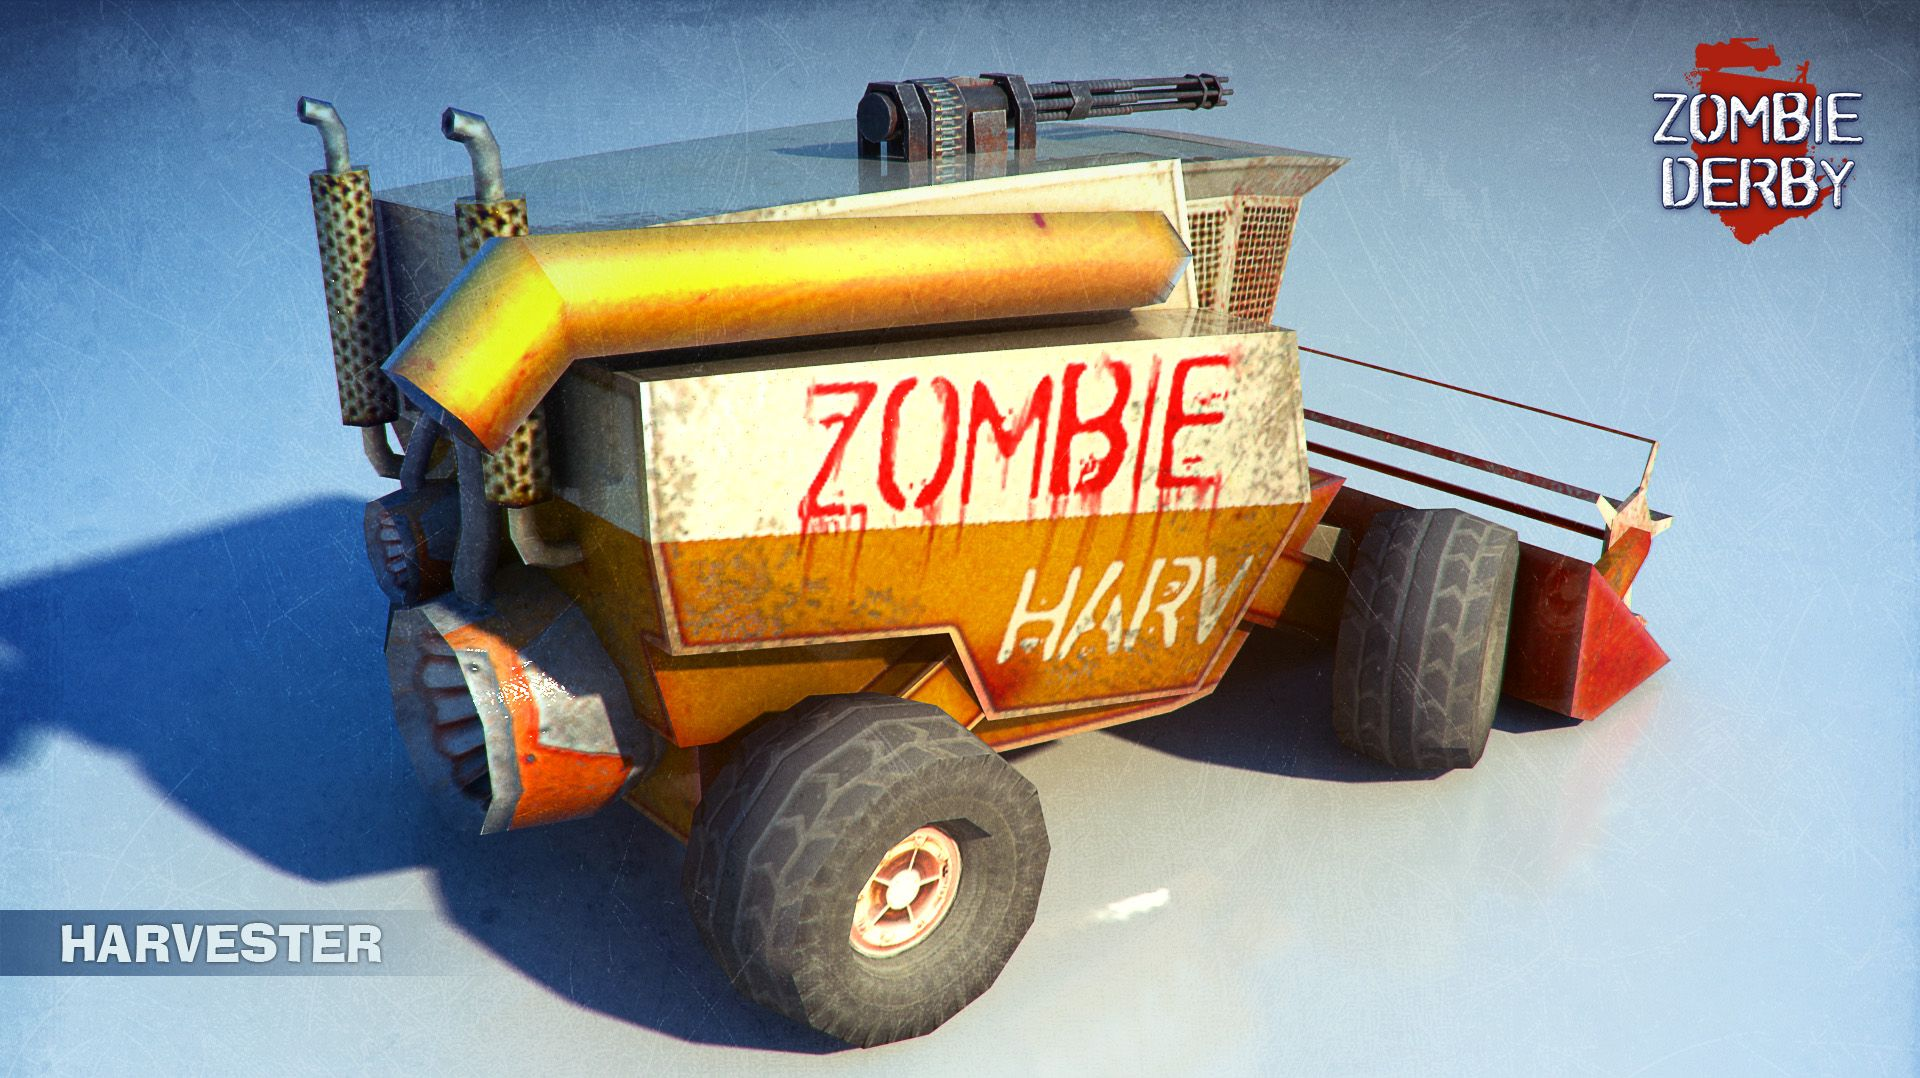 Here is the link to the full album of #killer #cars on imgur http://imgur.com/a/R9Fl9  #Zombie #3D #art #gameart #car #imgur